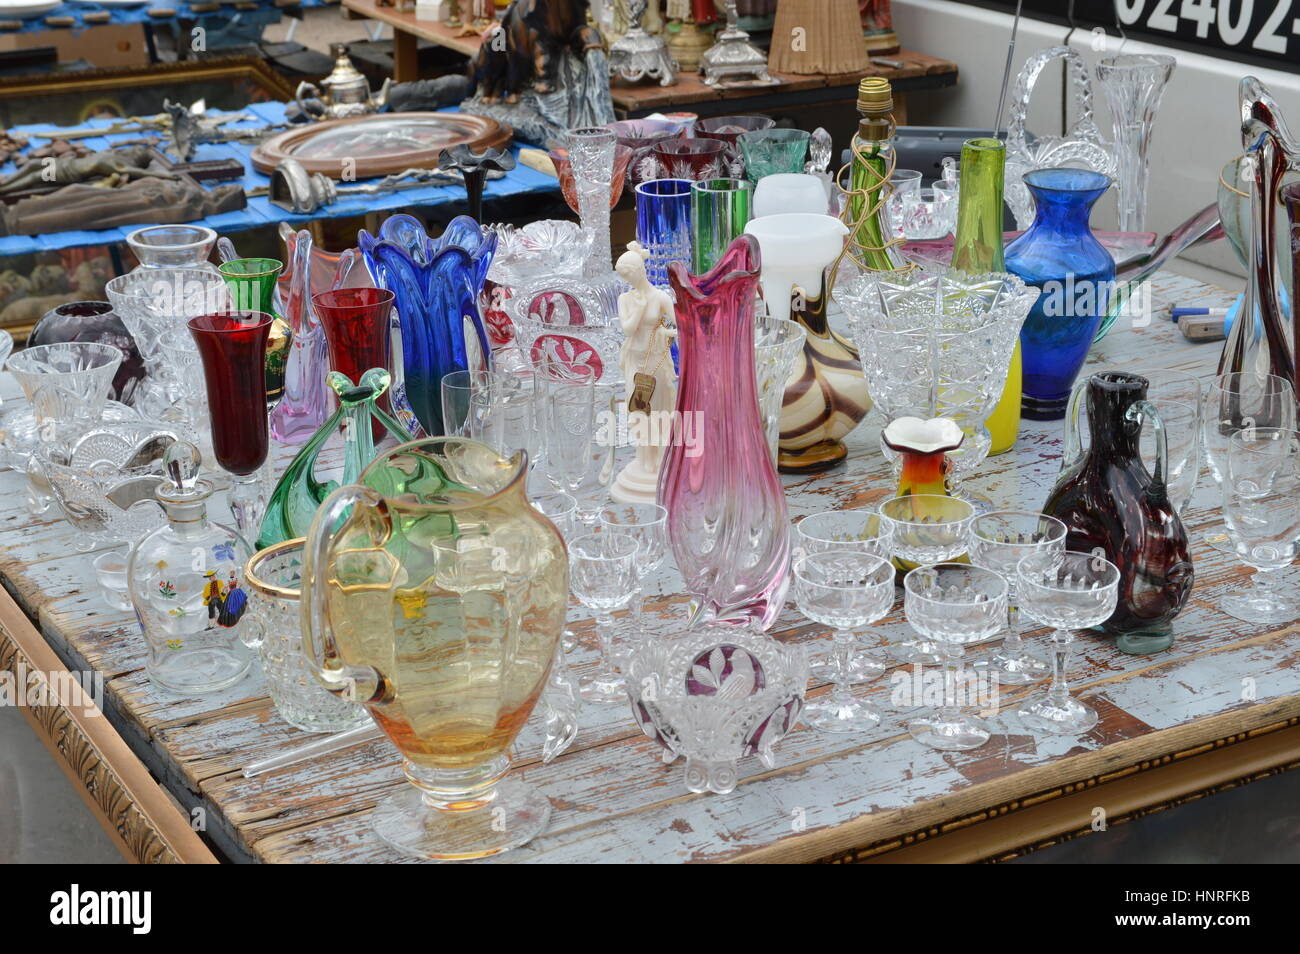 Cologne germany september 6 2015 old glasses jars and vases cologne germany september 6 2015 old glasses jars and vases on garage market a source for cheap shopping and collectors floridaeventfo Images